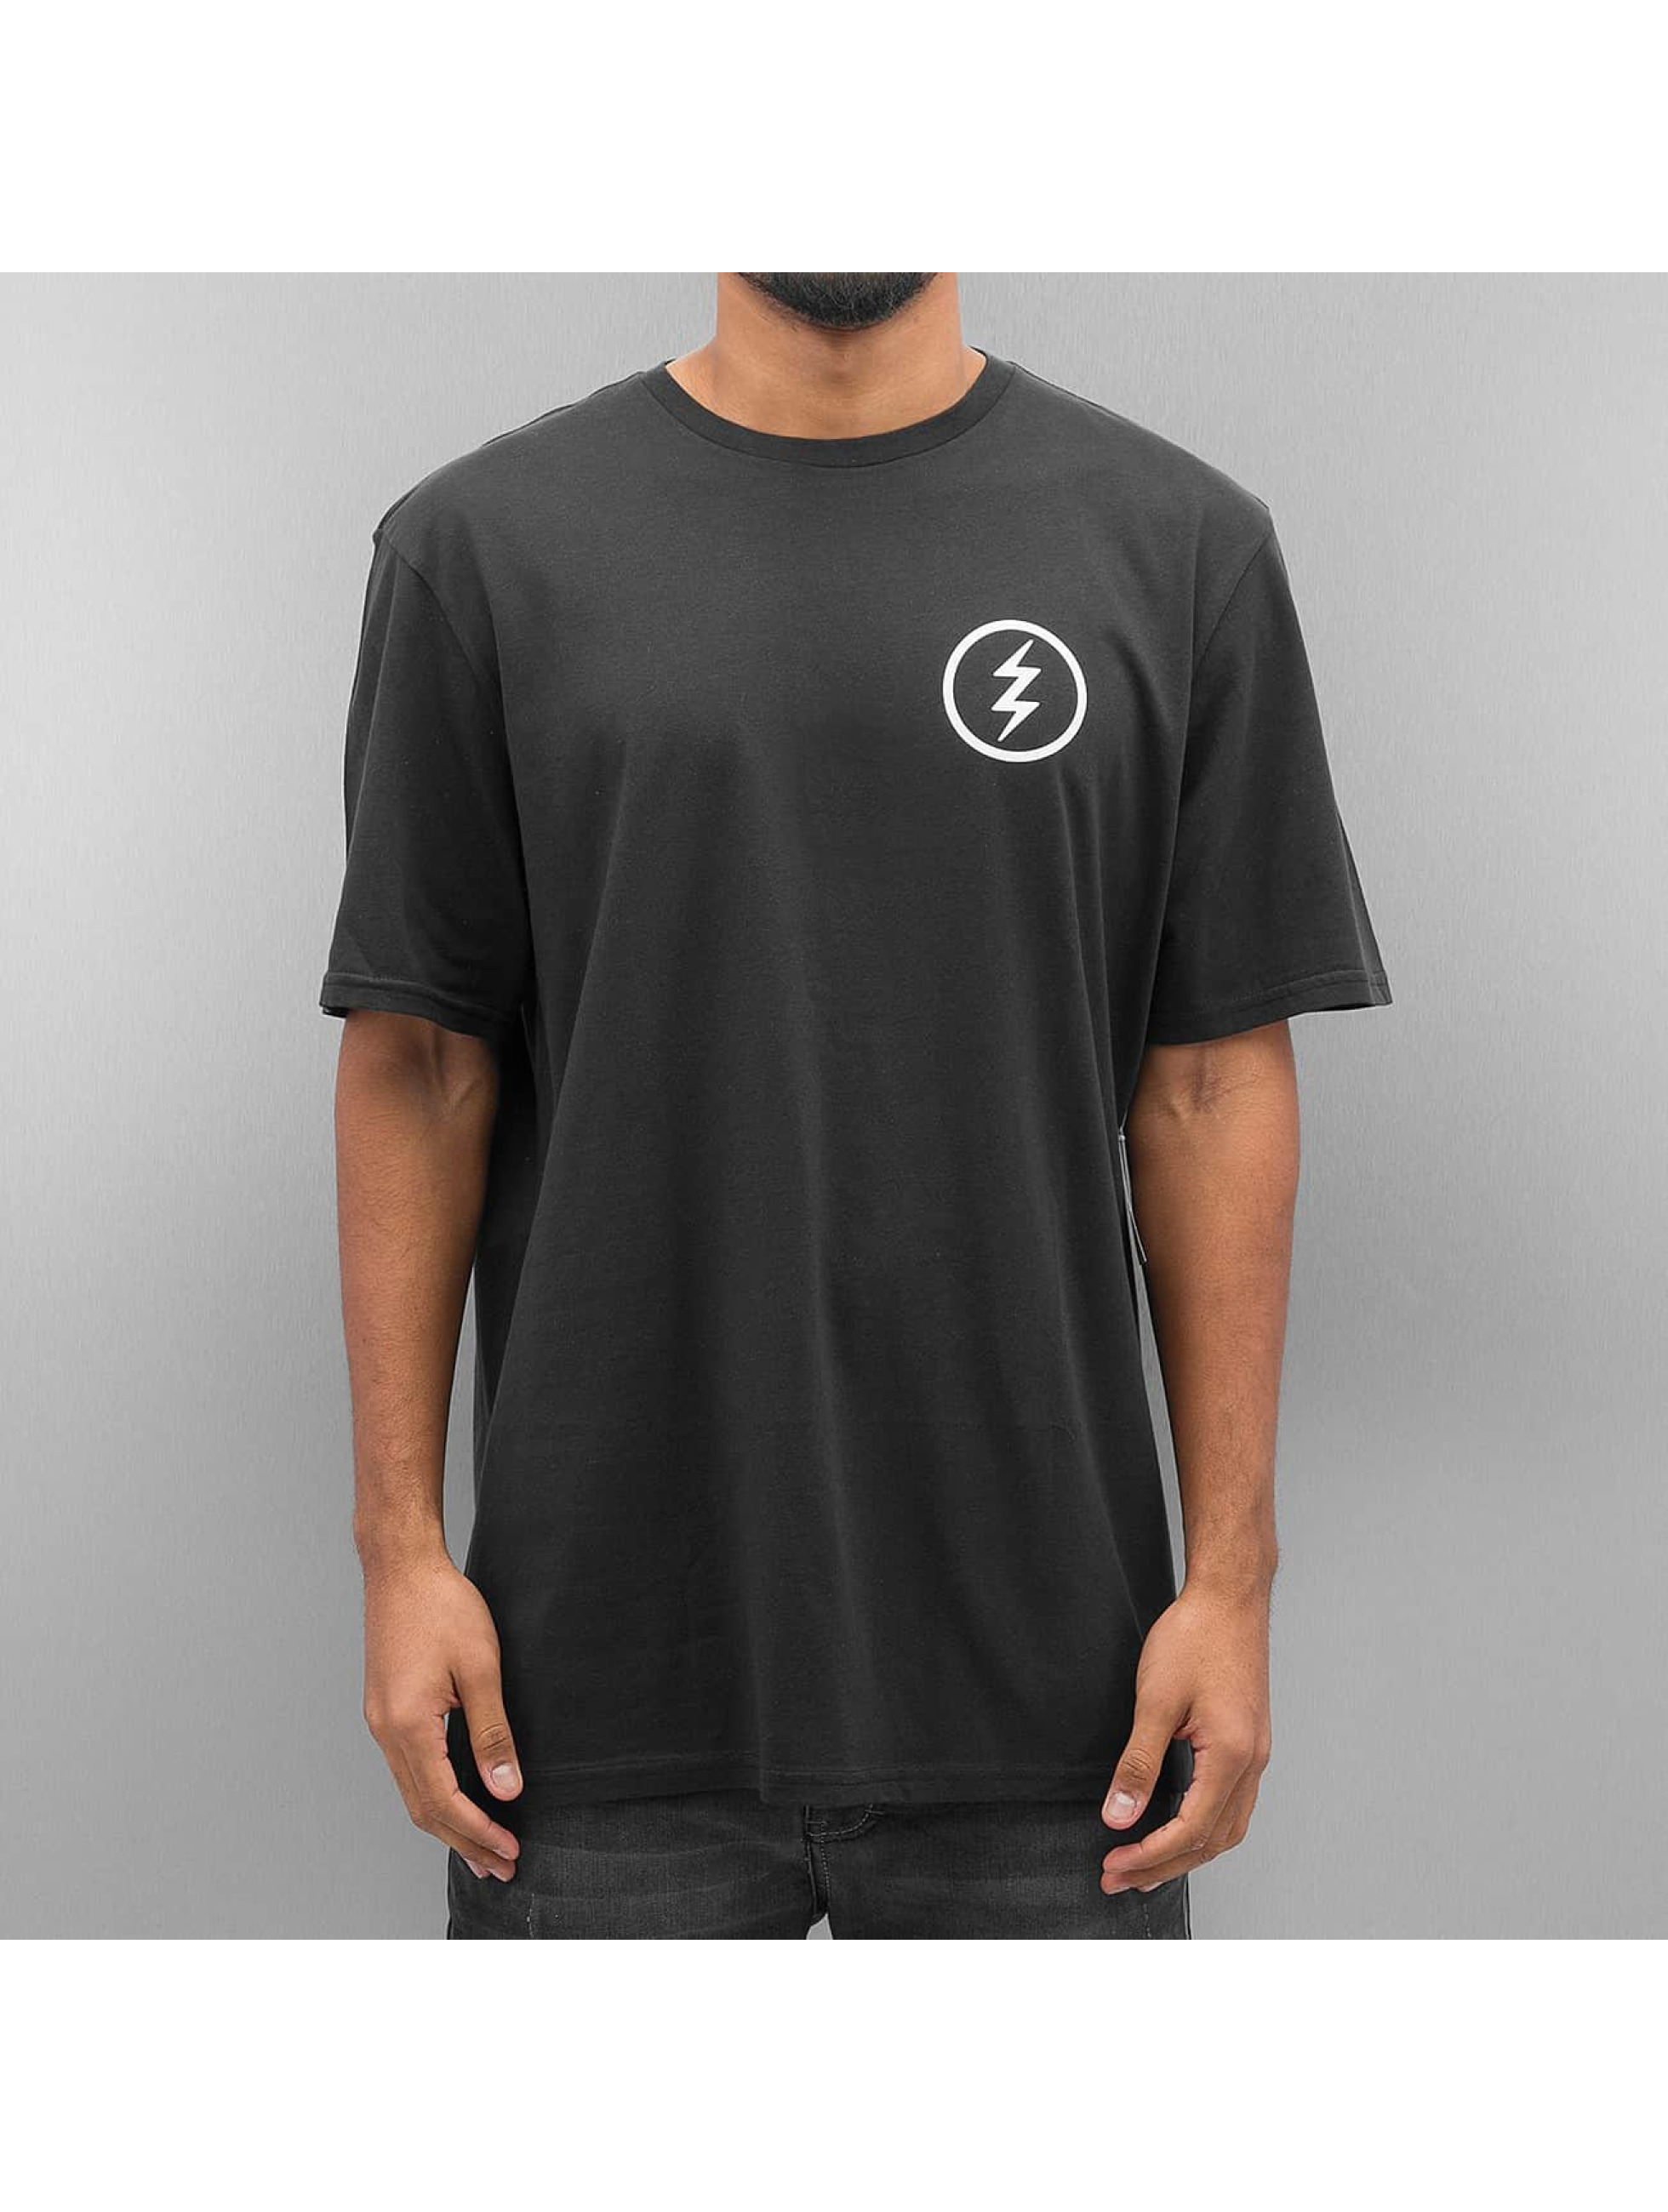 Electric T-Shirt VOLT TEAM black